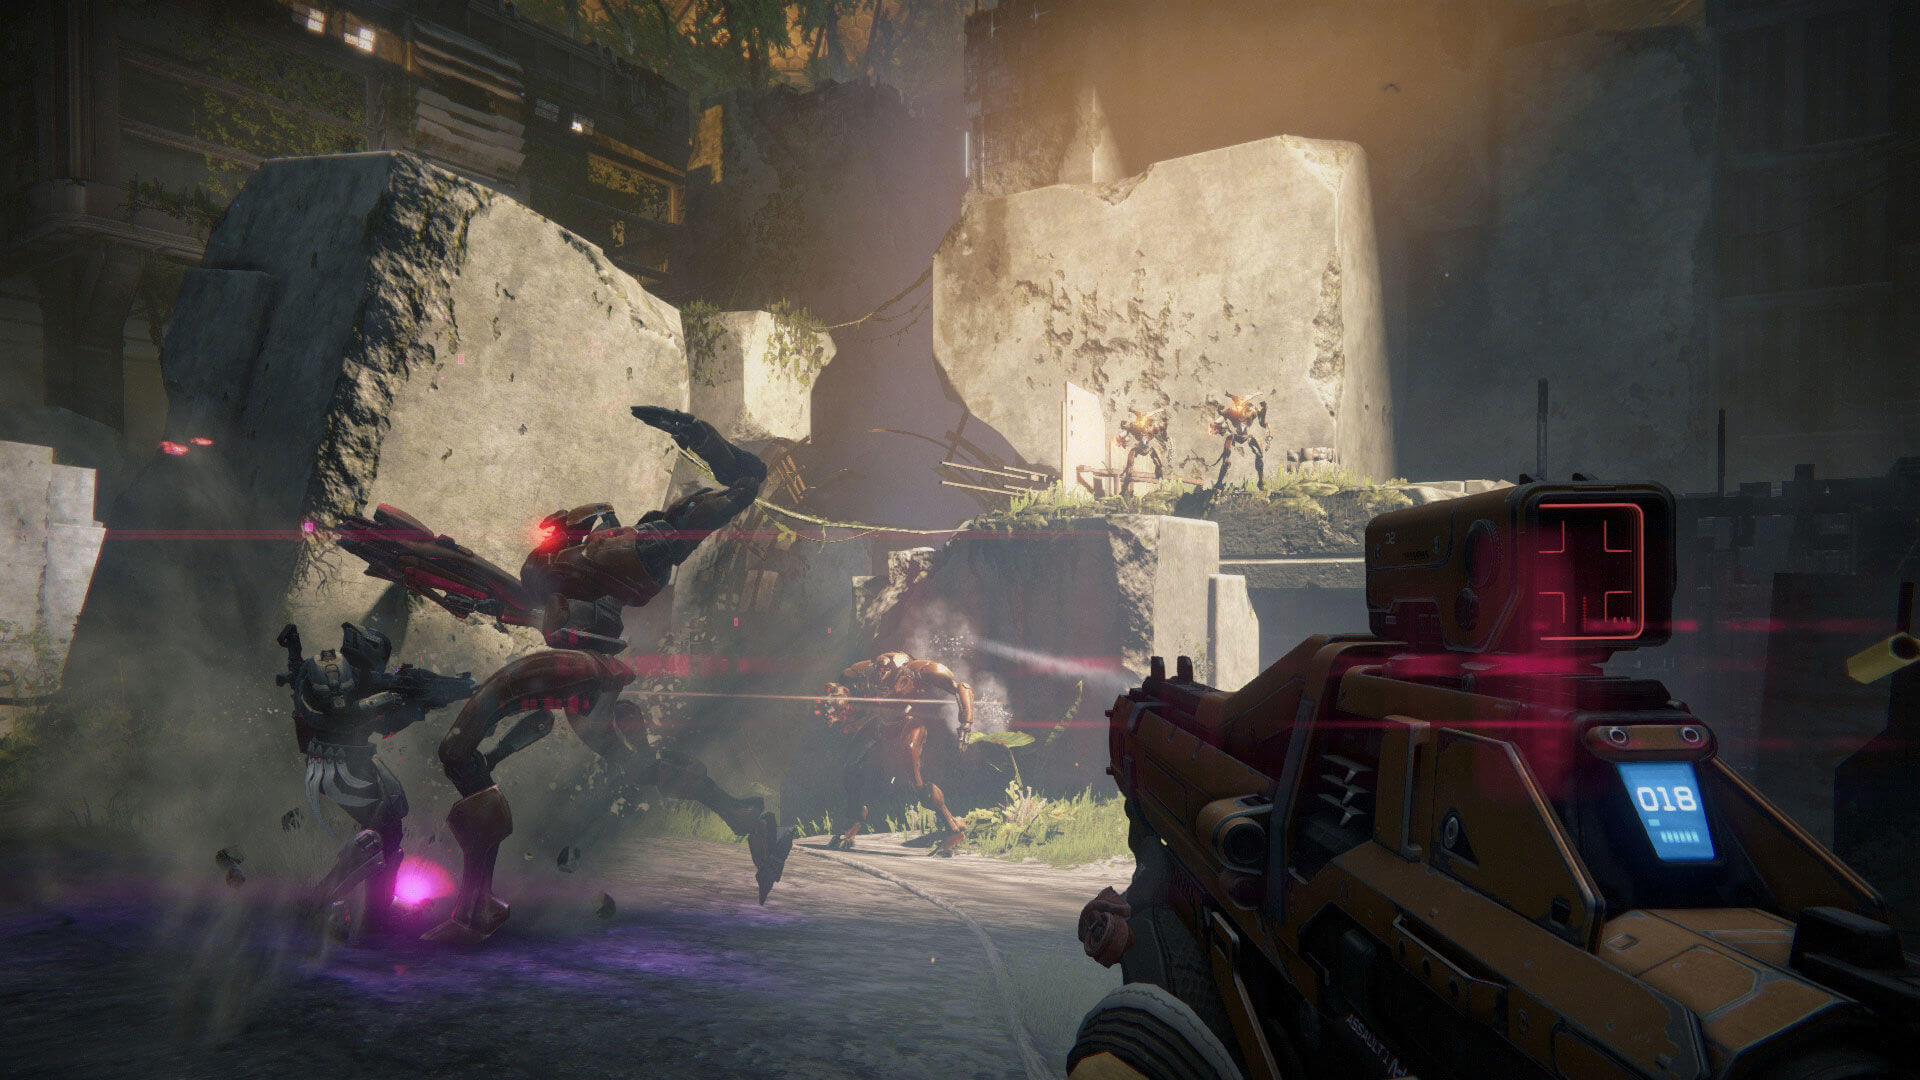 Bungie Assures Fans 'Destiny' is 'Close to Shipping'; New Screenshots Released